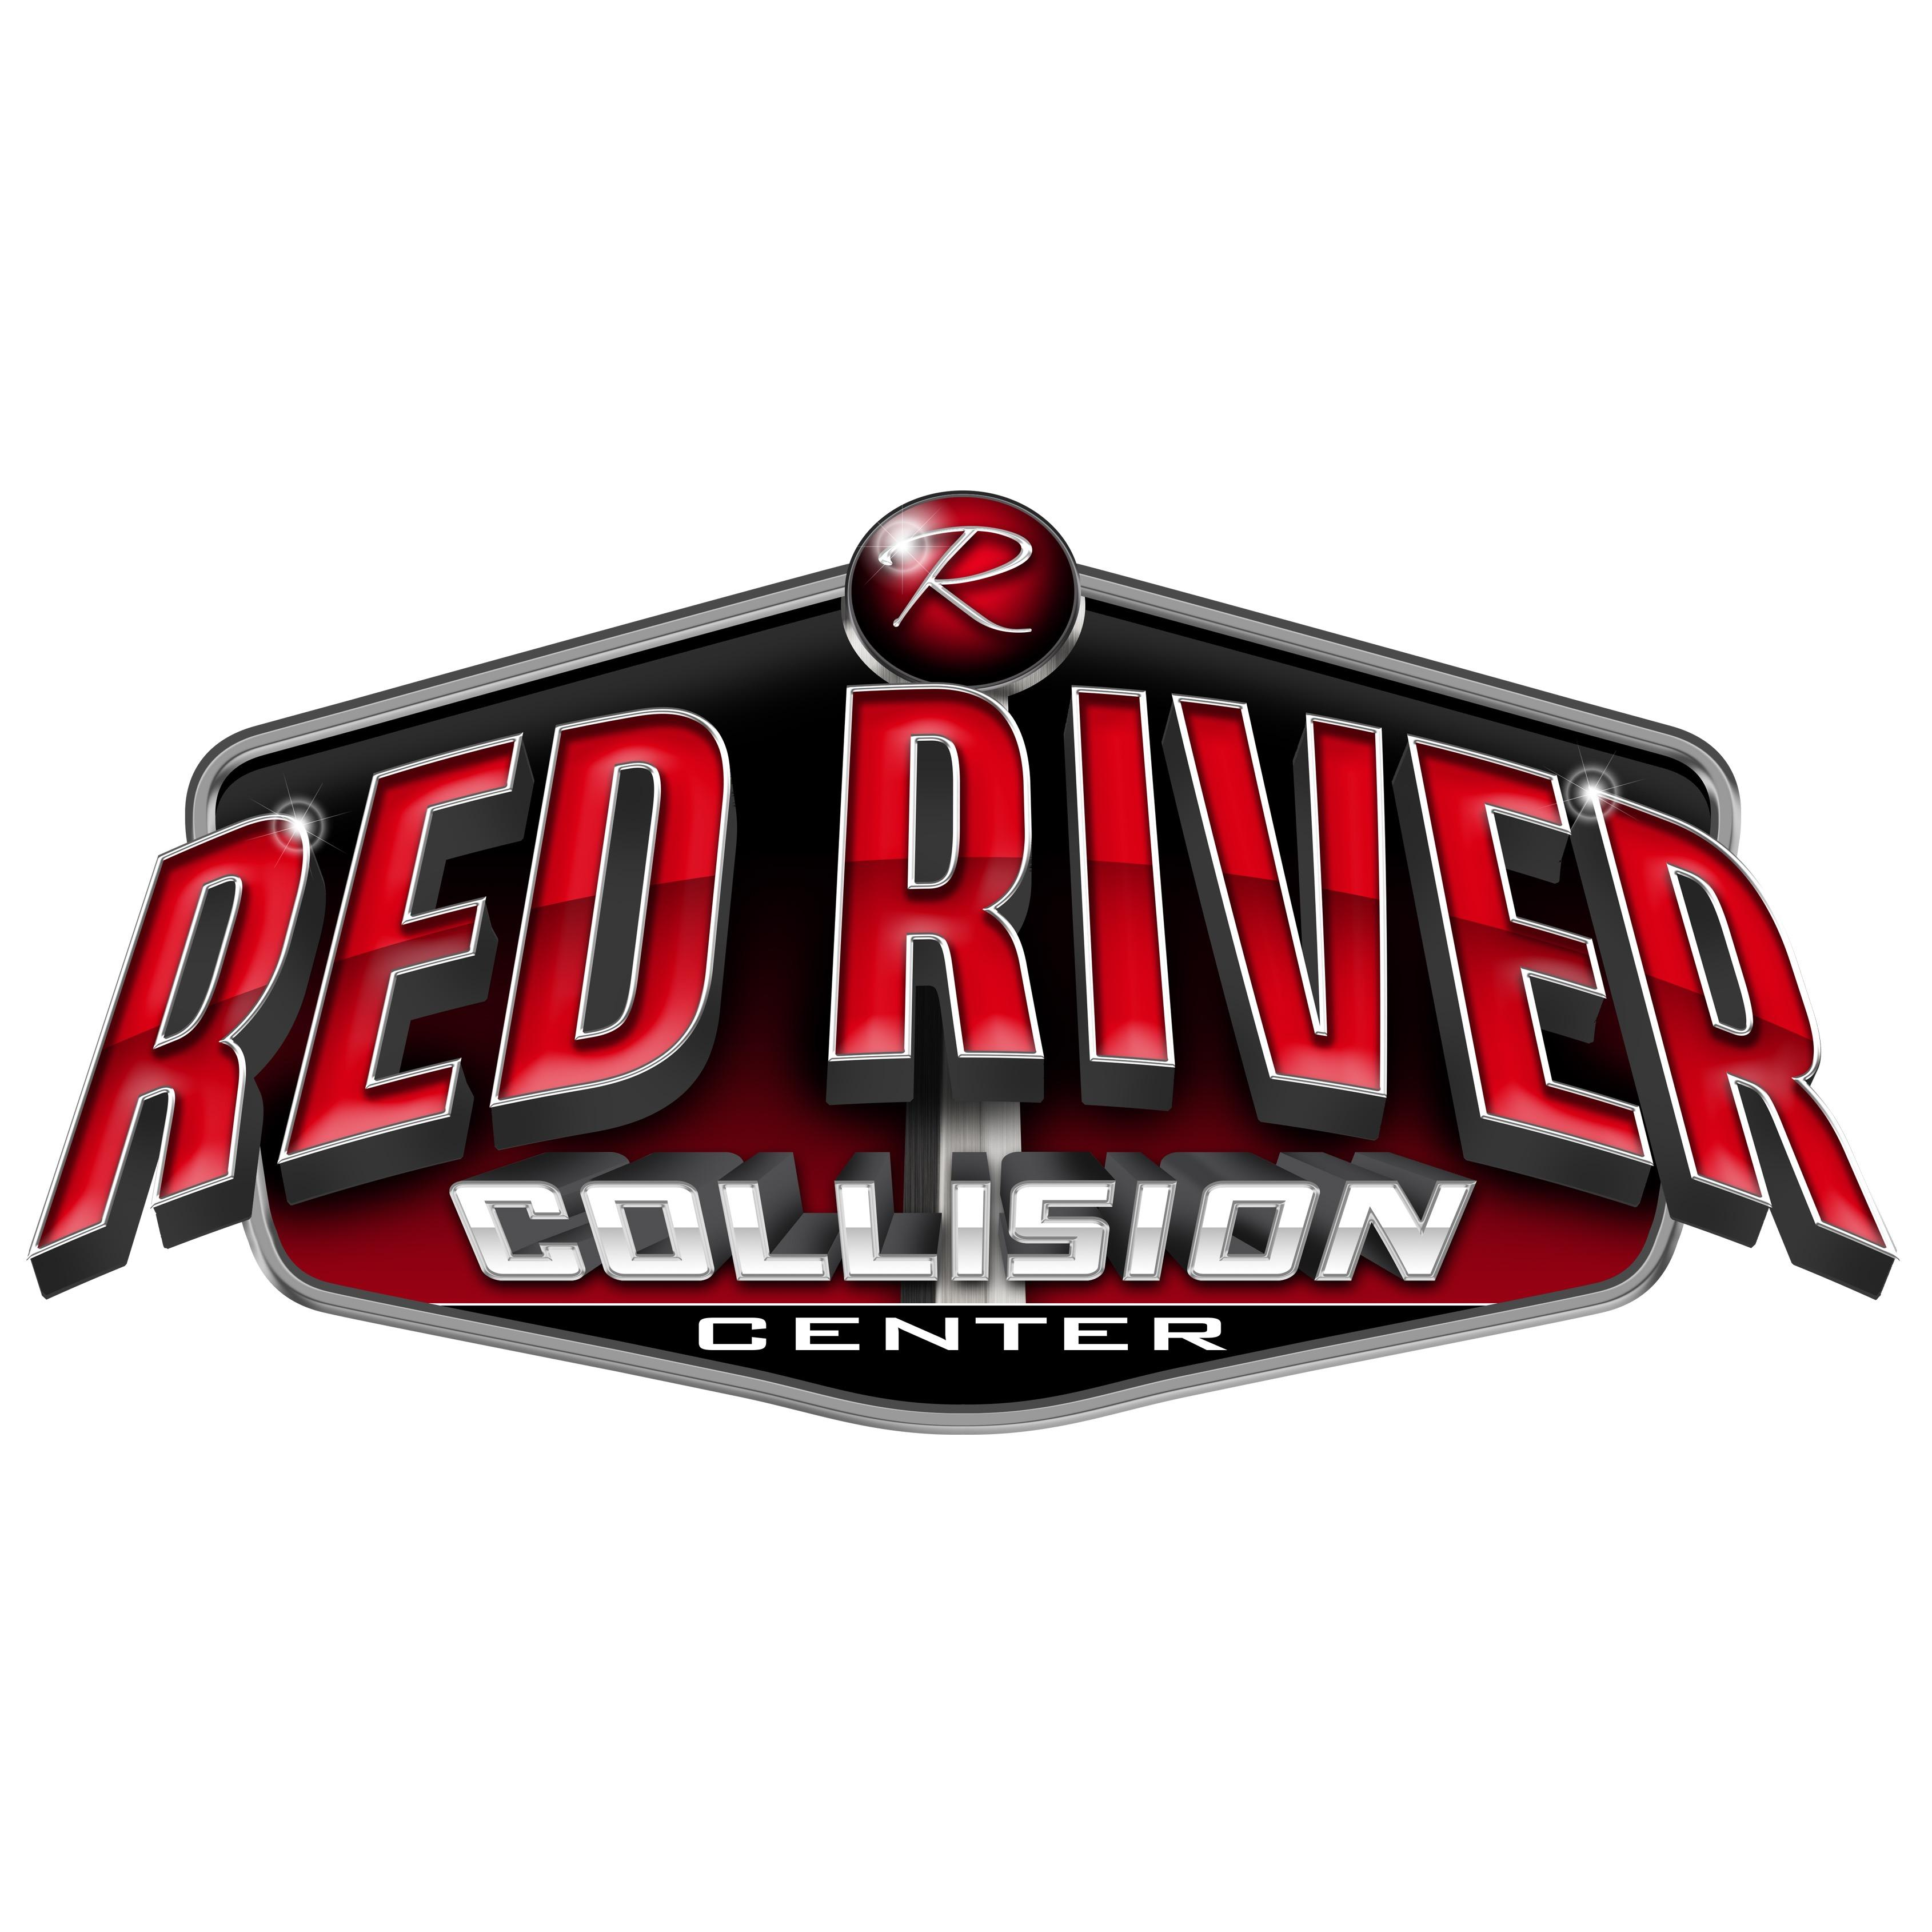 Red River Collision Center at Moffitt Automotive